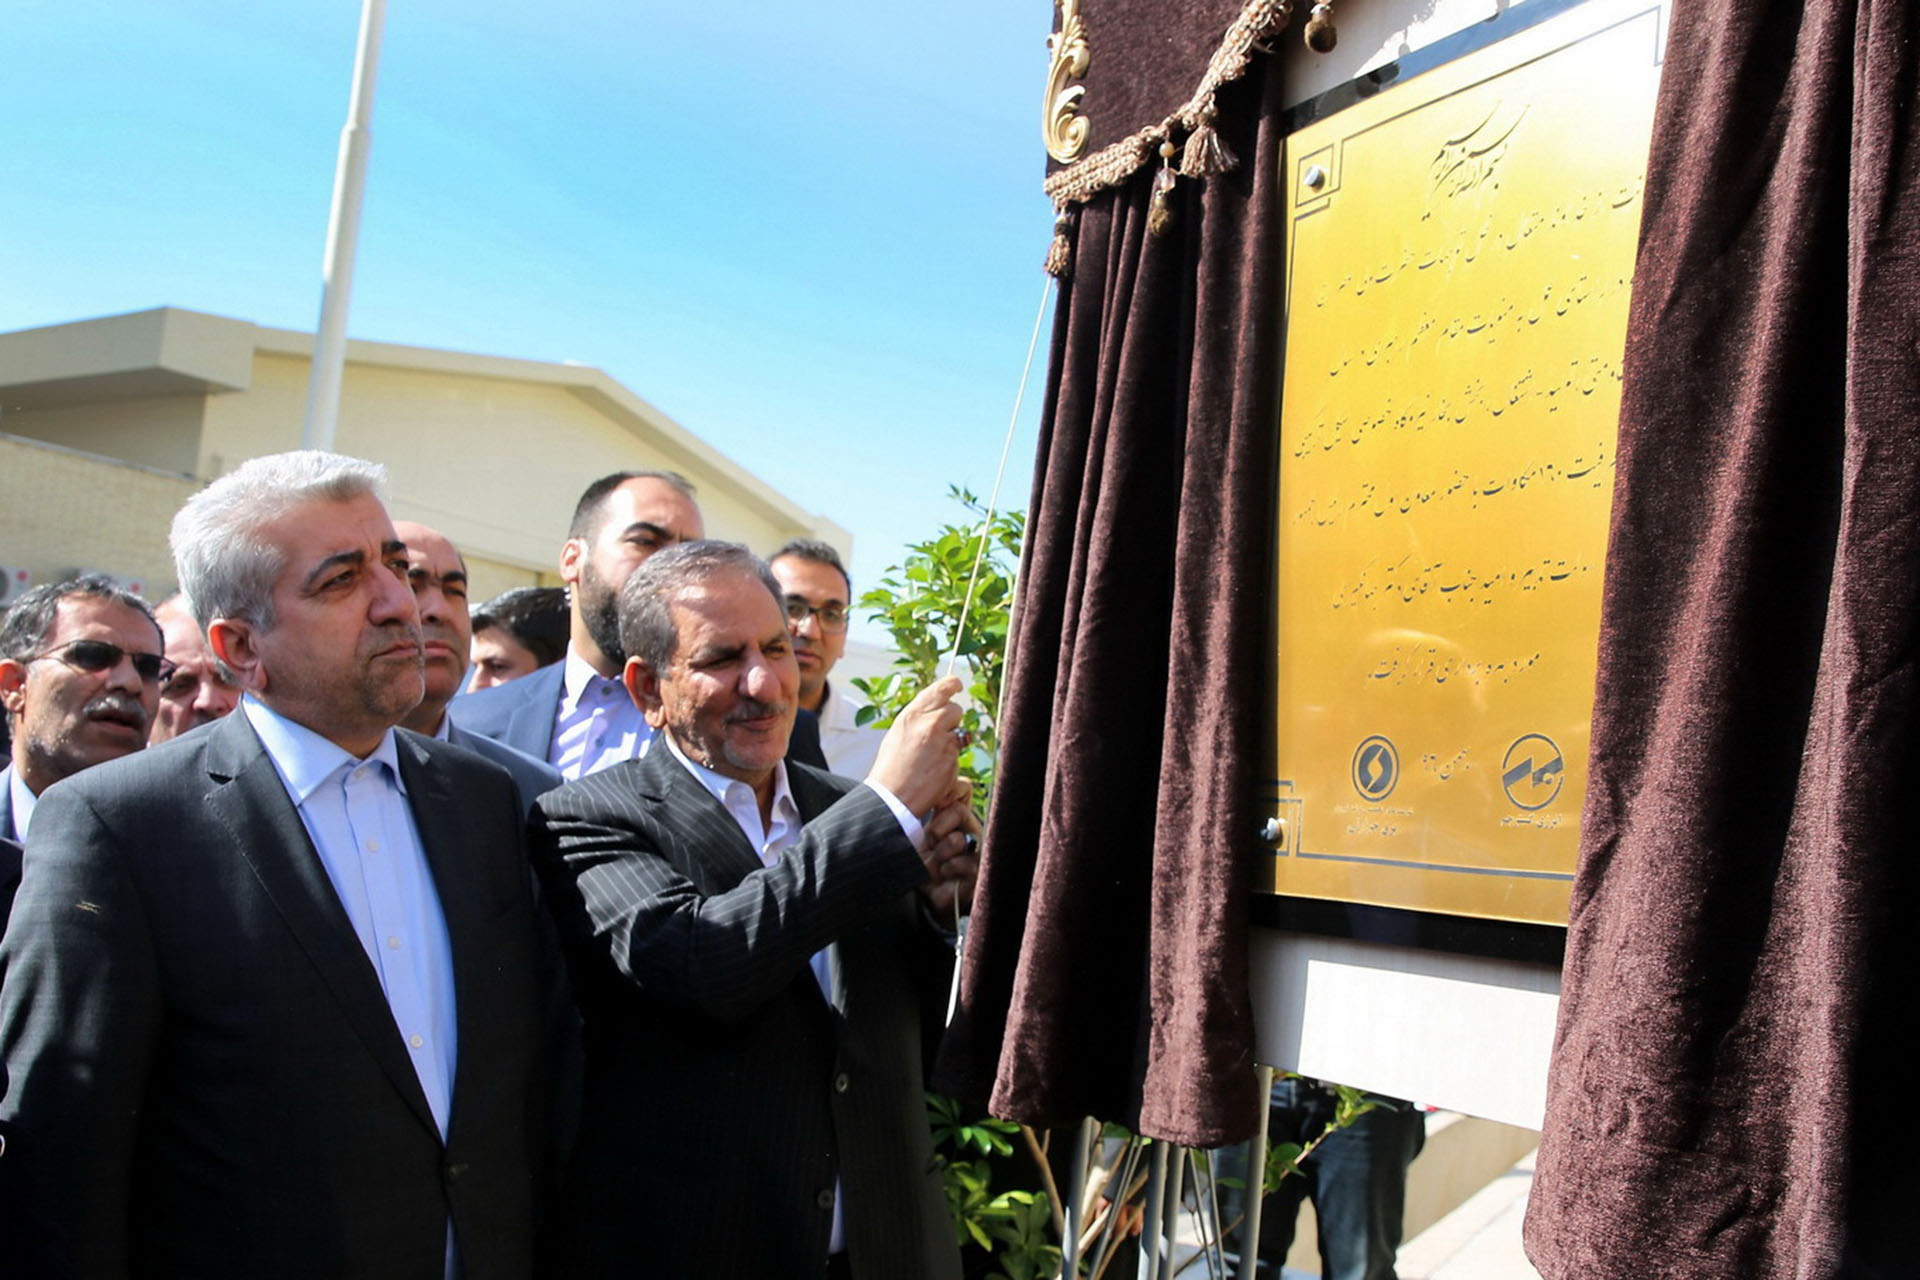 Taban Yazd Combined Cycle Power Plant was Officially Opened